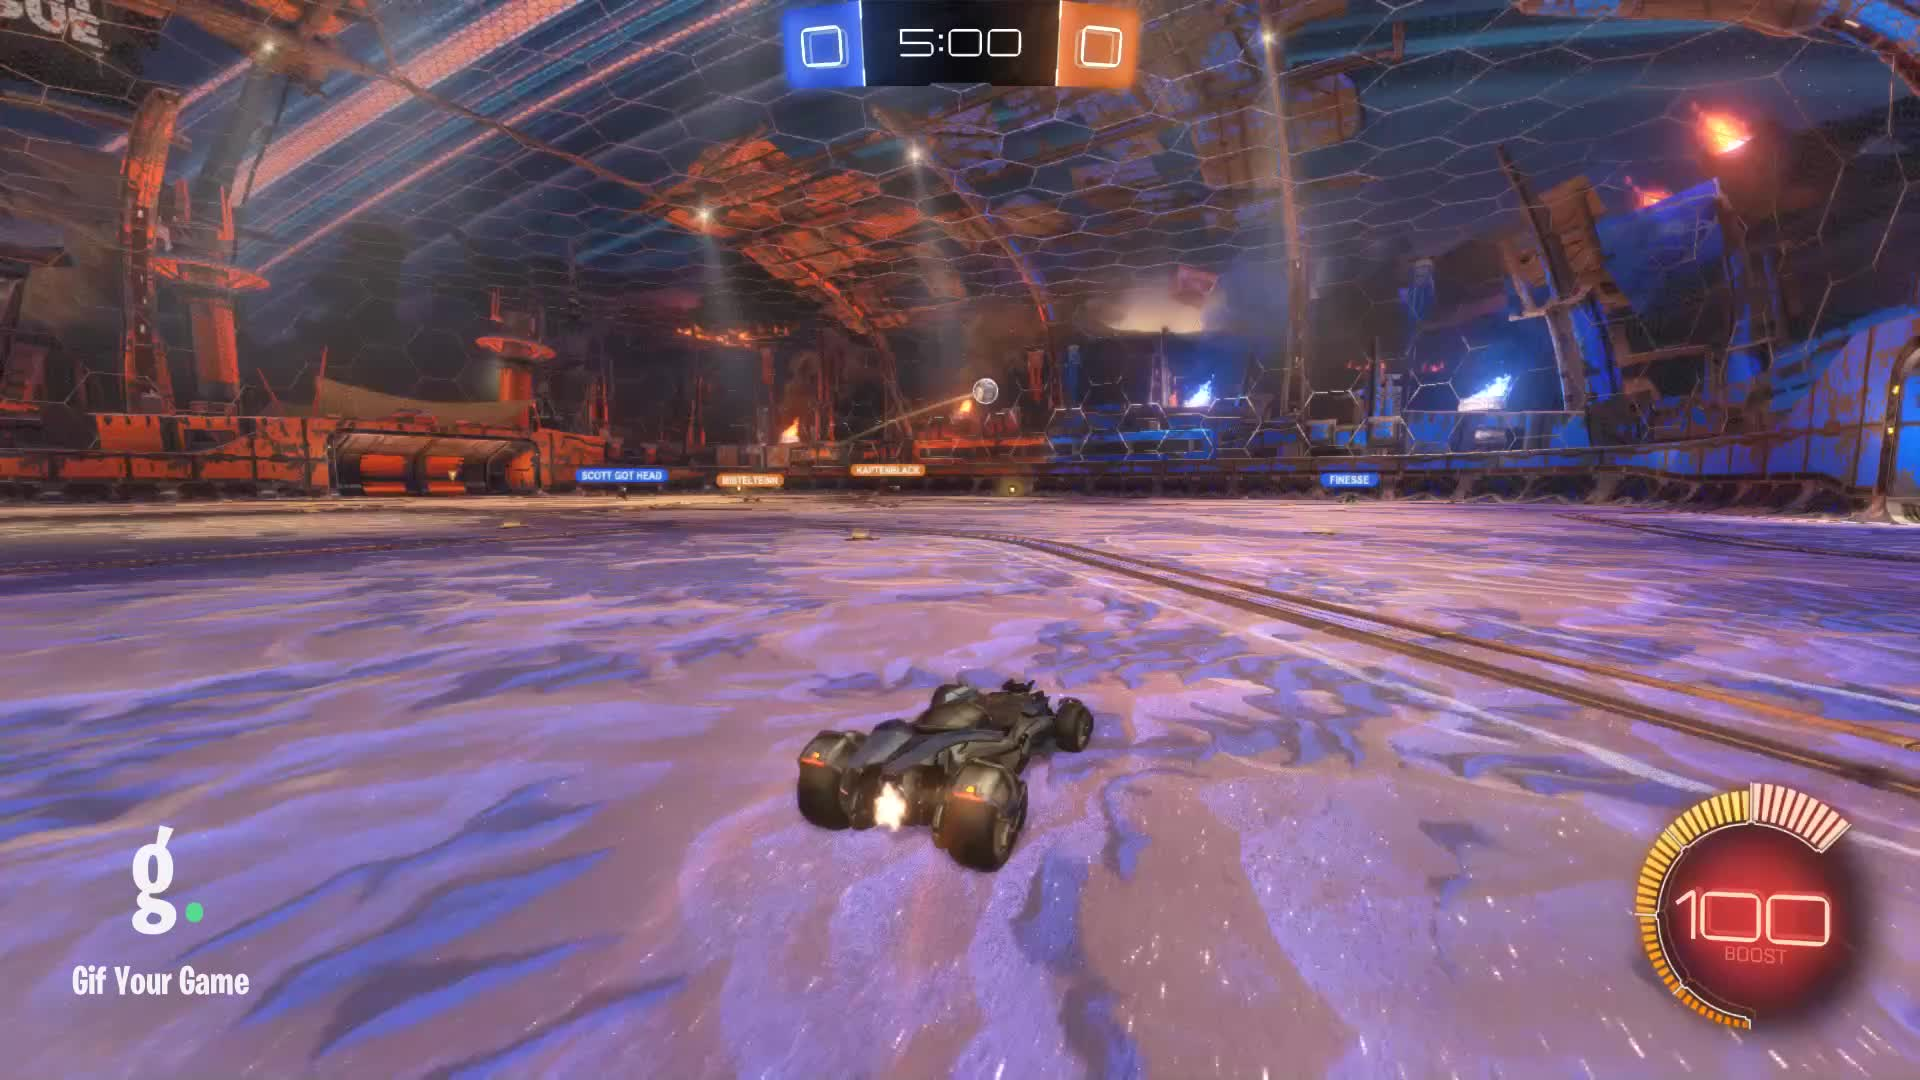 Assist, Gif Your Game, GifYourGame, Rocket League, RocketLeague, colesolo, Assist 1: colesolo GIFs